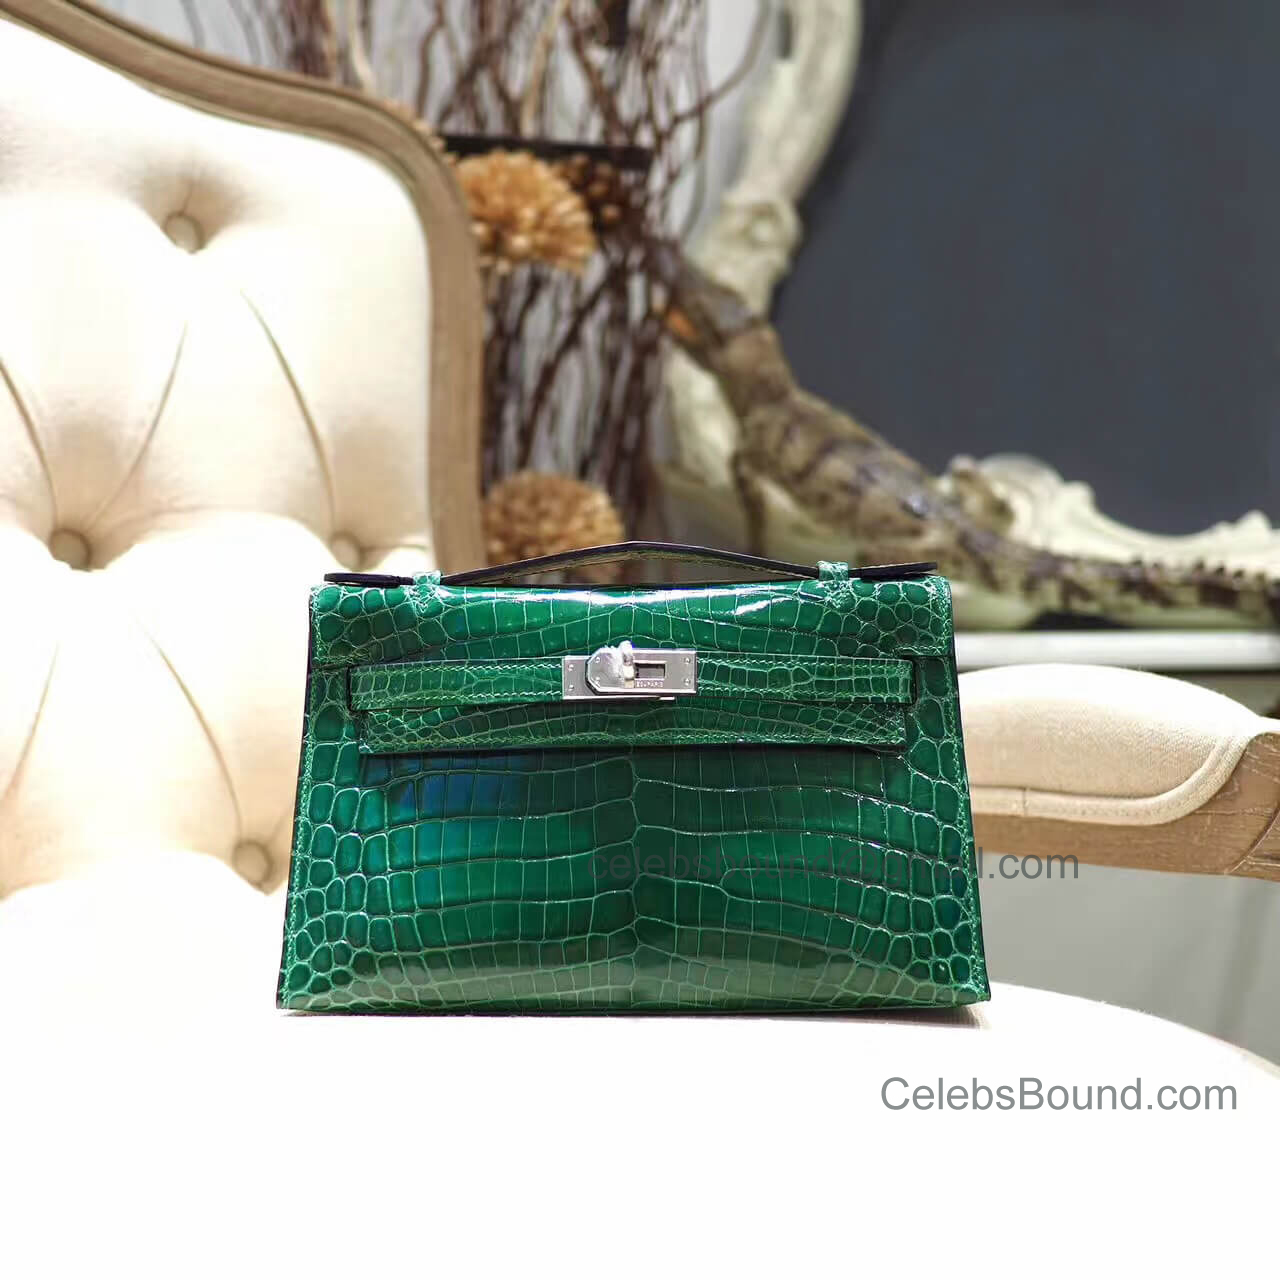 Replica Hermes Mini Kelly 22 Pochette Bag in Vert Emeraude Shiny Nile Croc PHW